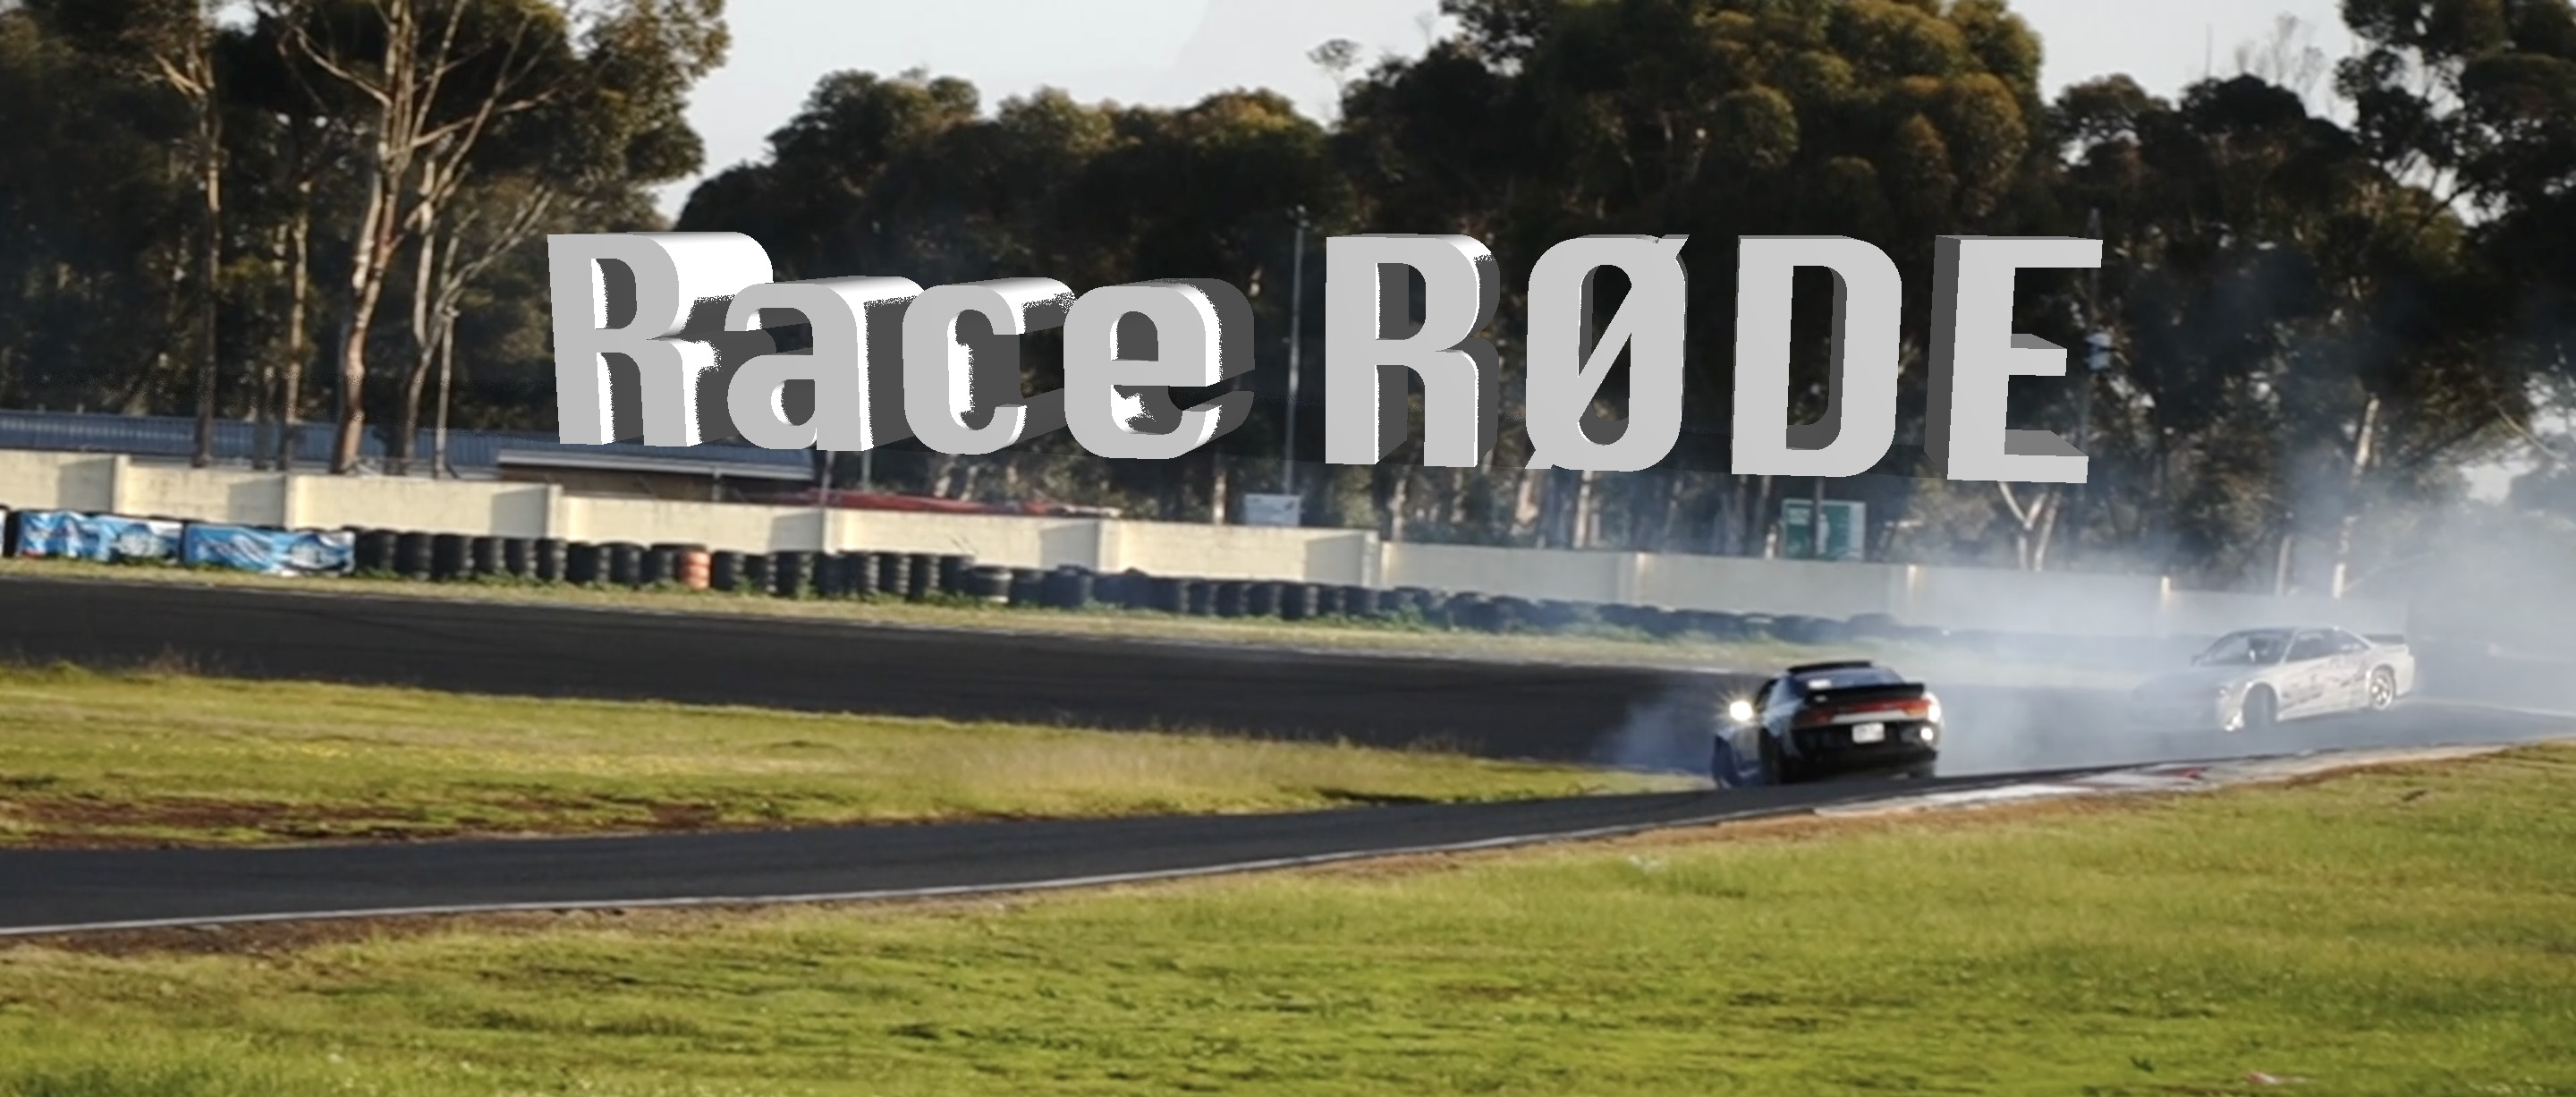 Race RØDE My RØDE Reel 2020 Film | Artøvez Is Fantastic | Only Love from Cape Town, South Africa